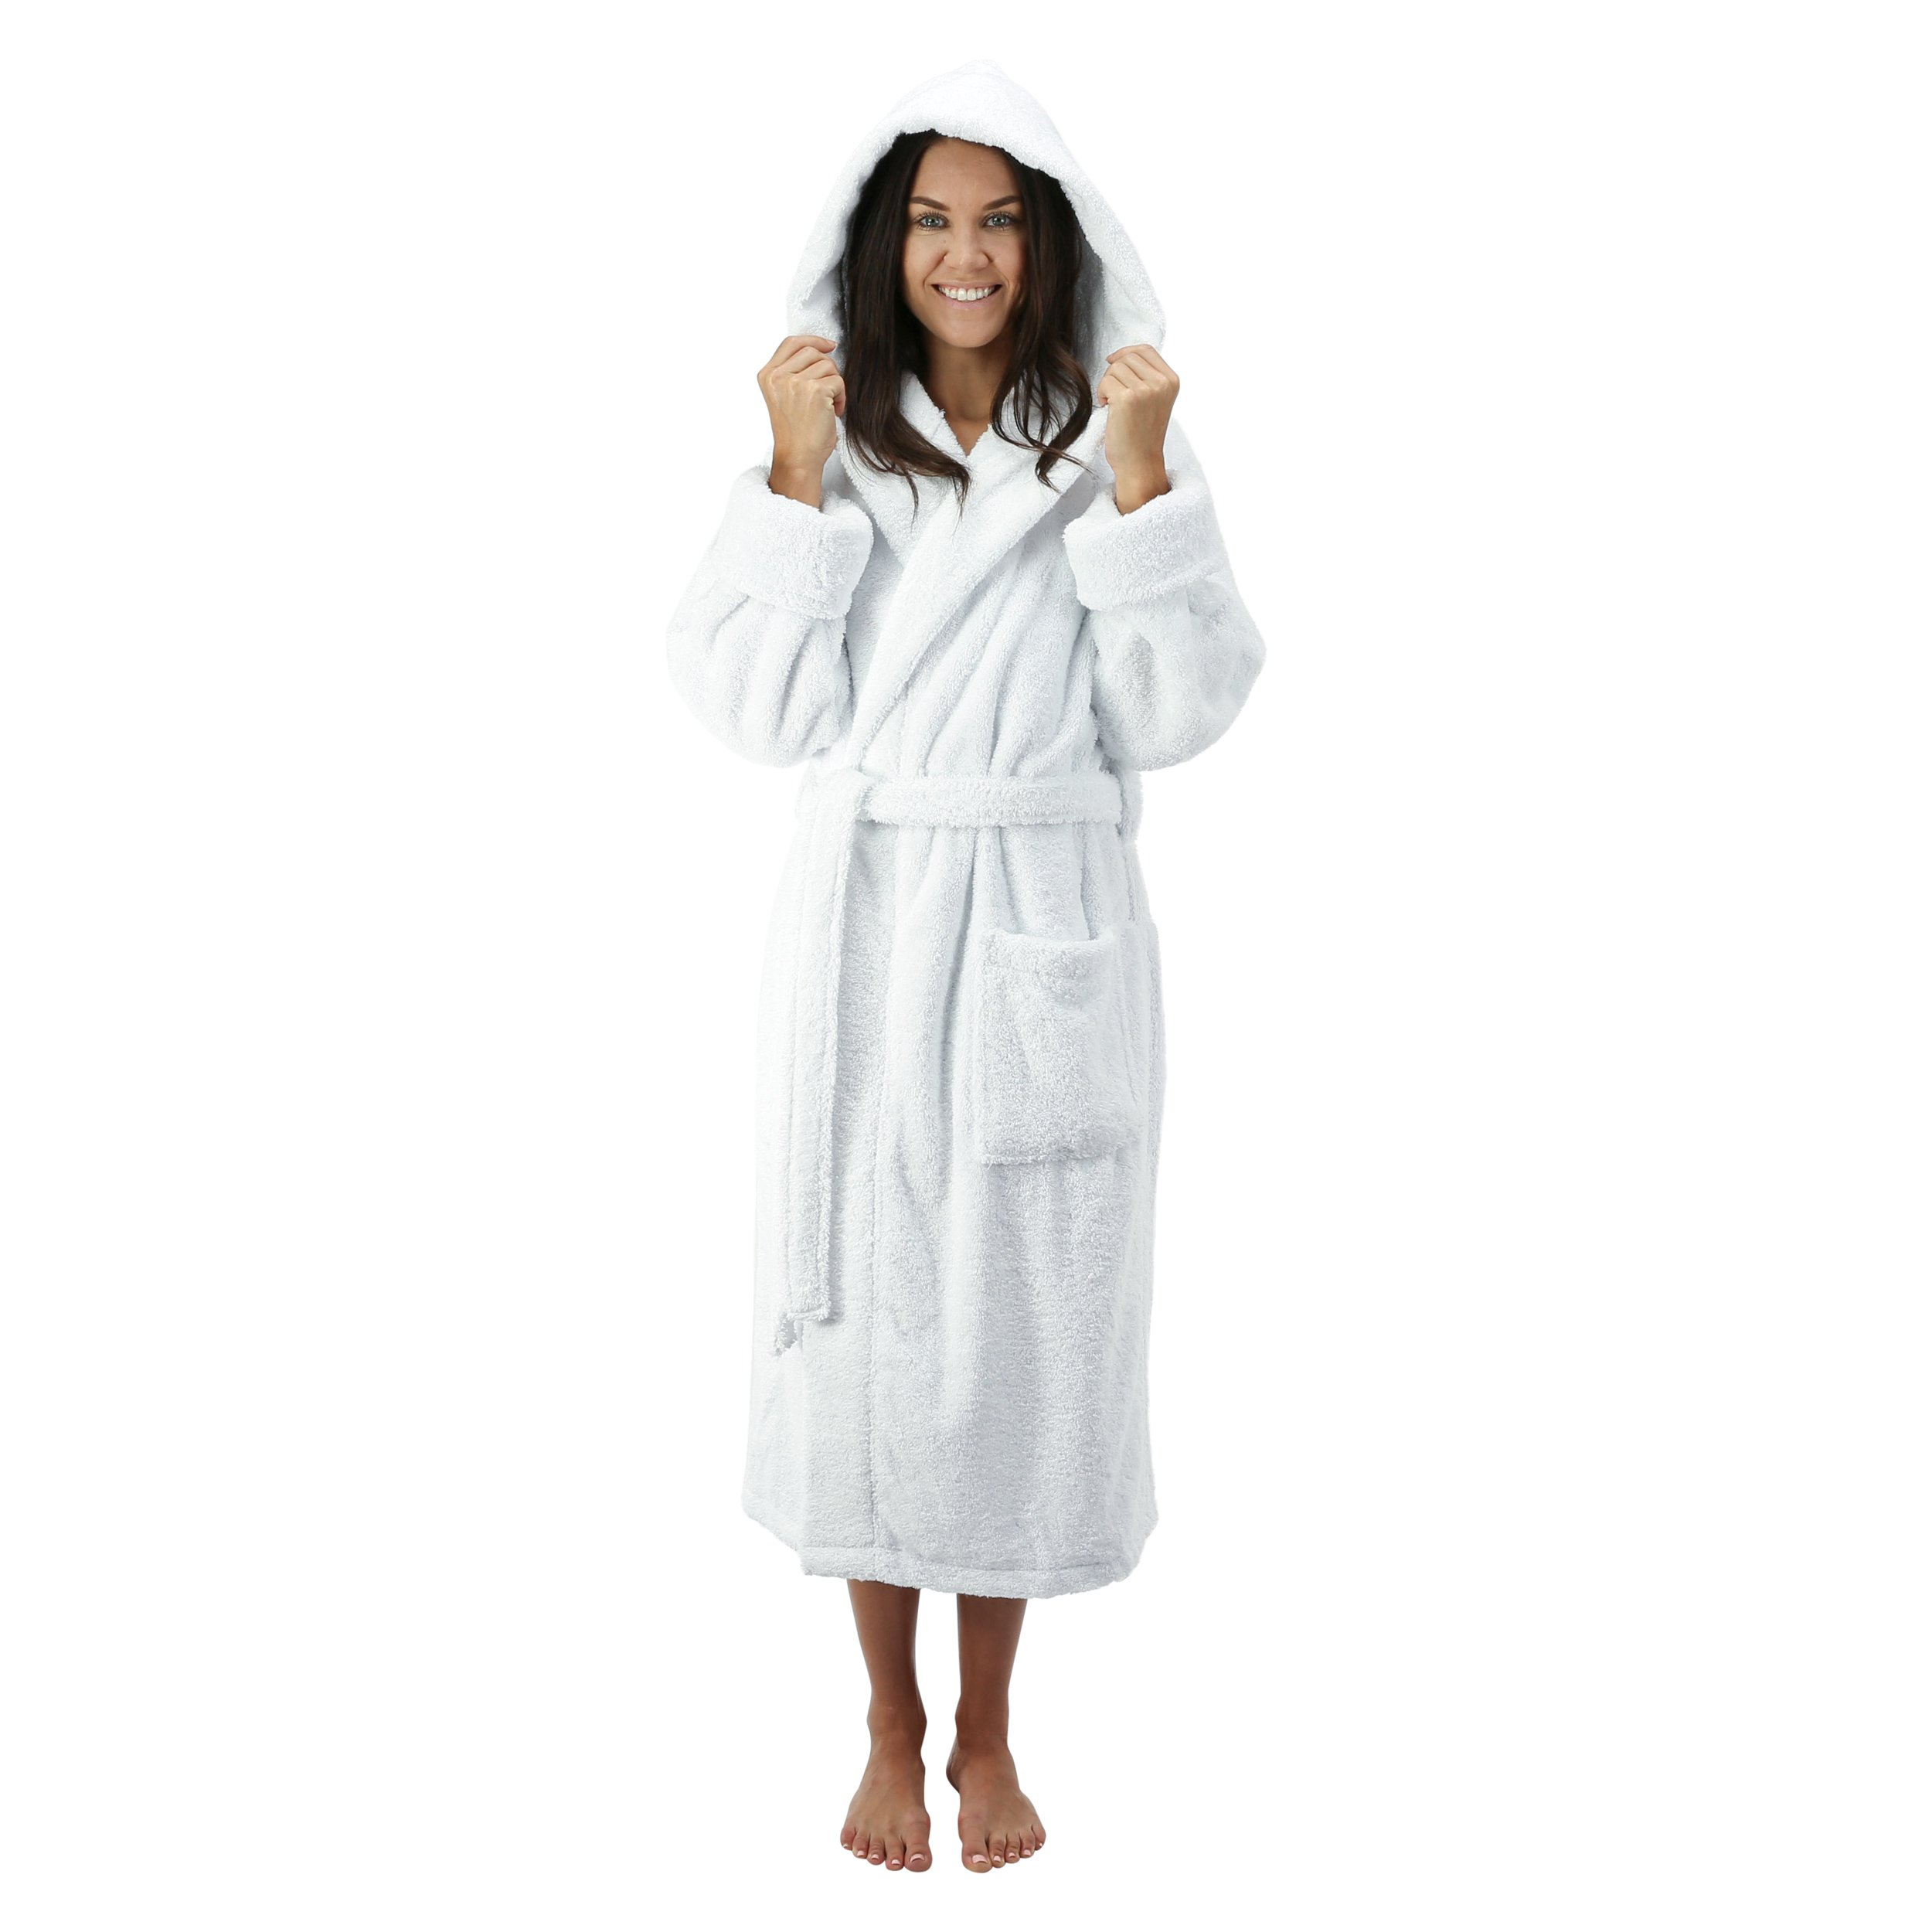 Comfy Robes Personalized Women's Deluxe 20 oz. Turkish Cotton Hooded Bathrobe, XS White by Comfy Robes